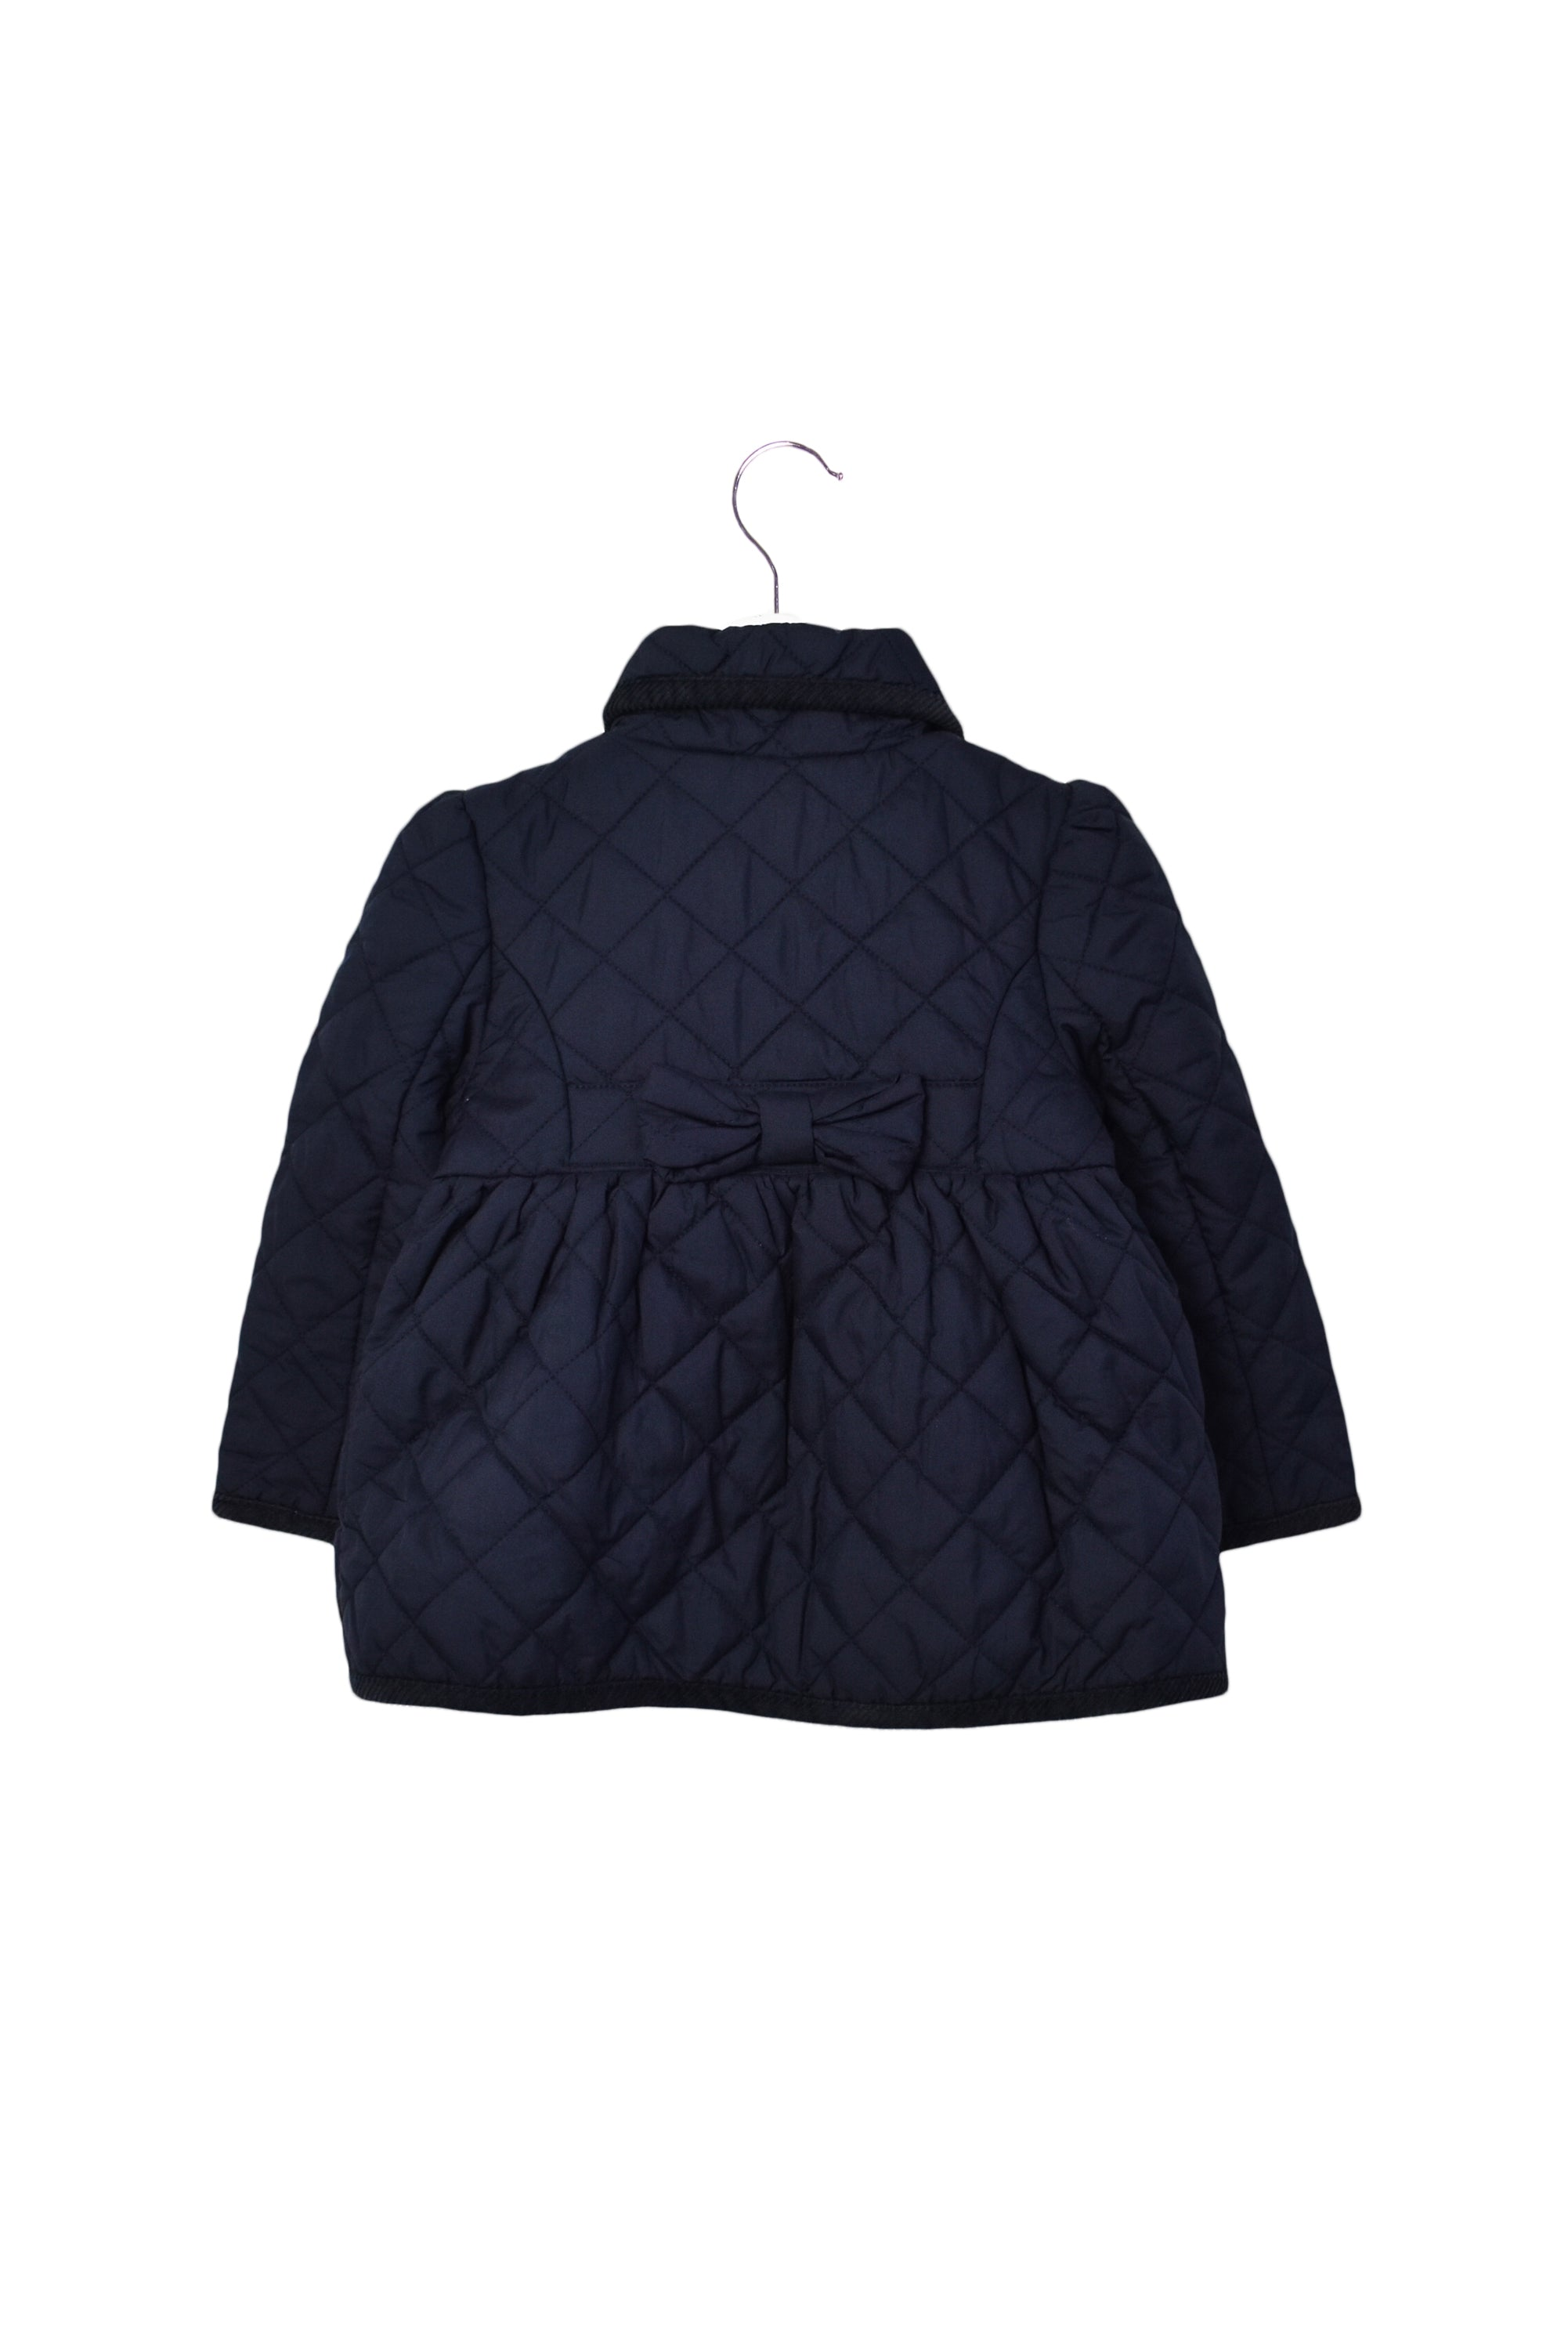 10006699 Ralph Lauren Baby~ Puffer Jacket 18M at Retykle